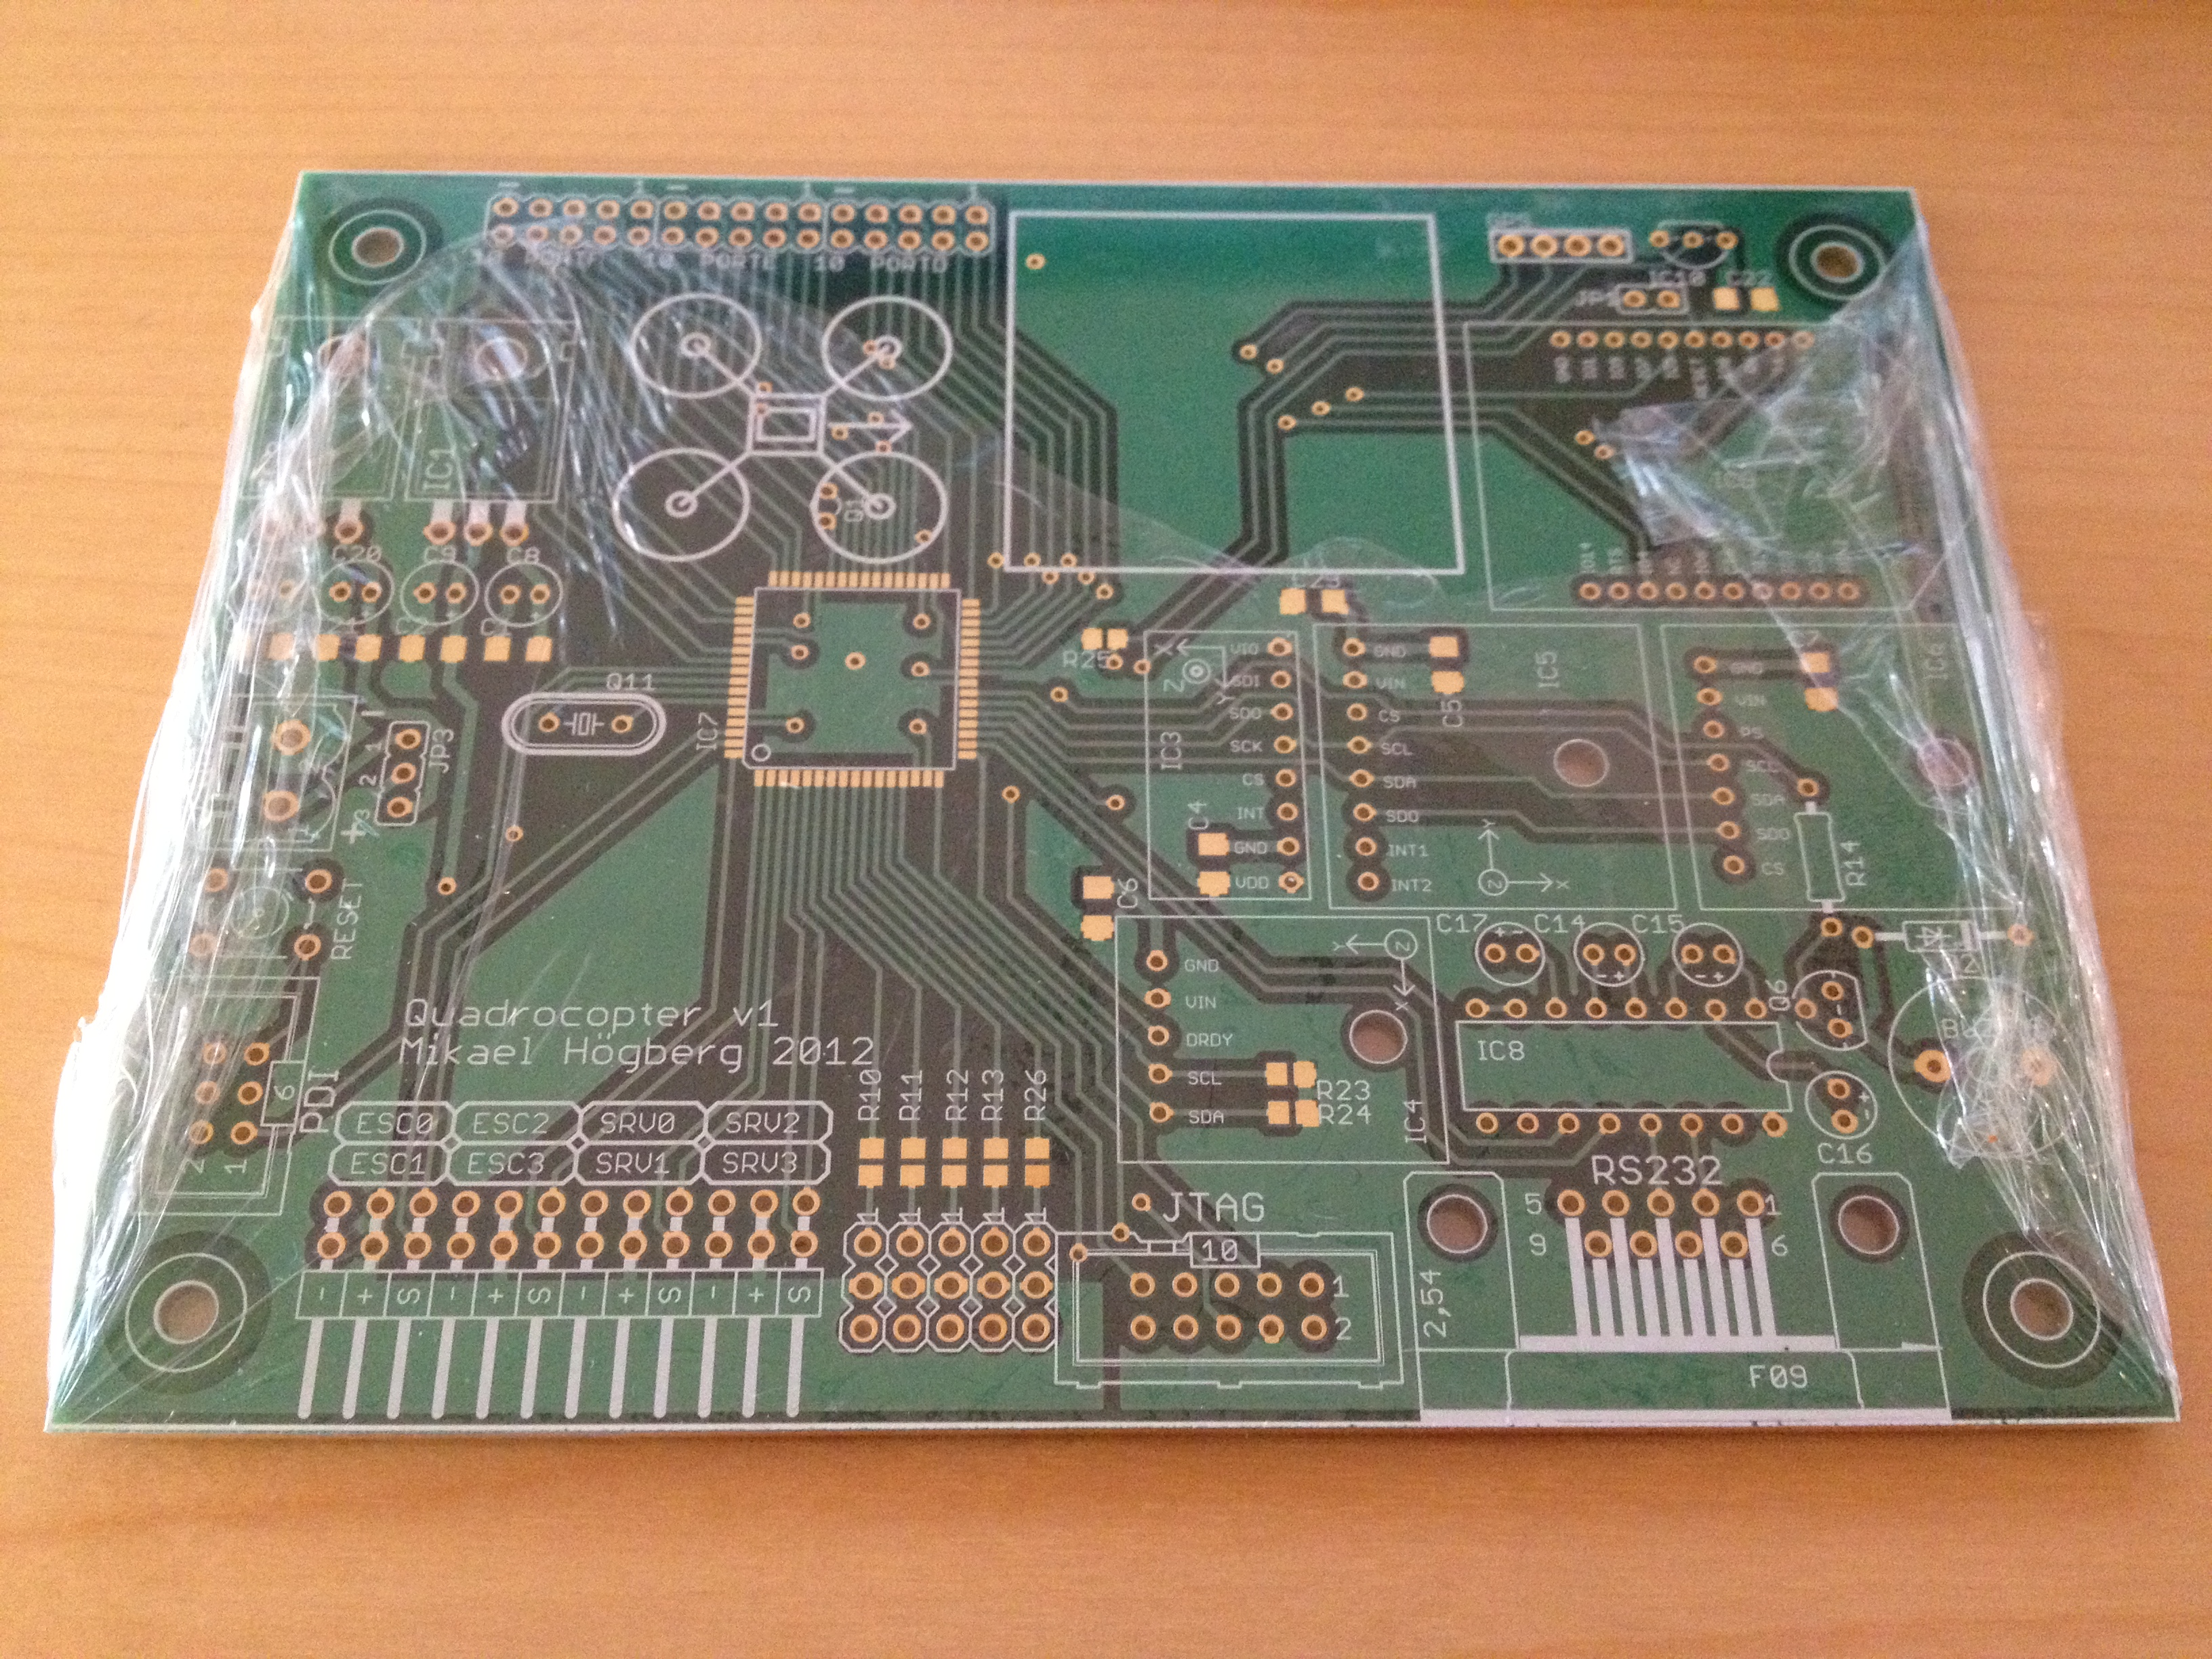 PCB from Olimex